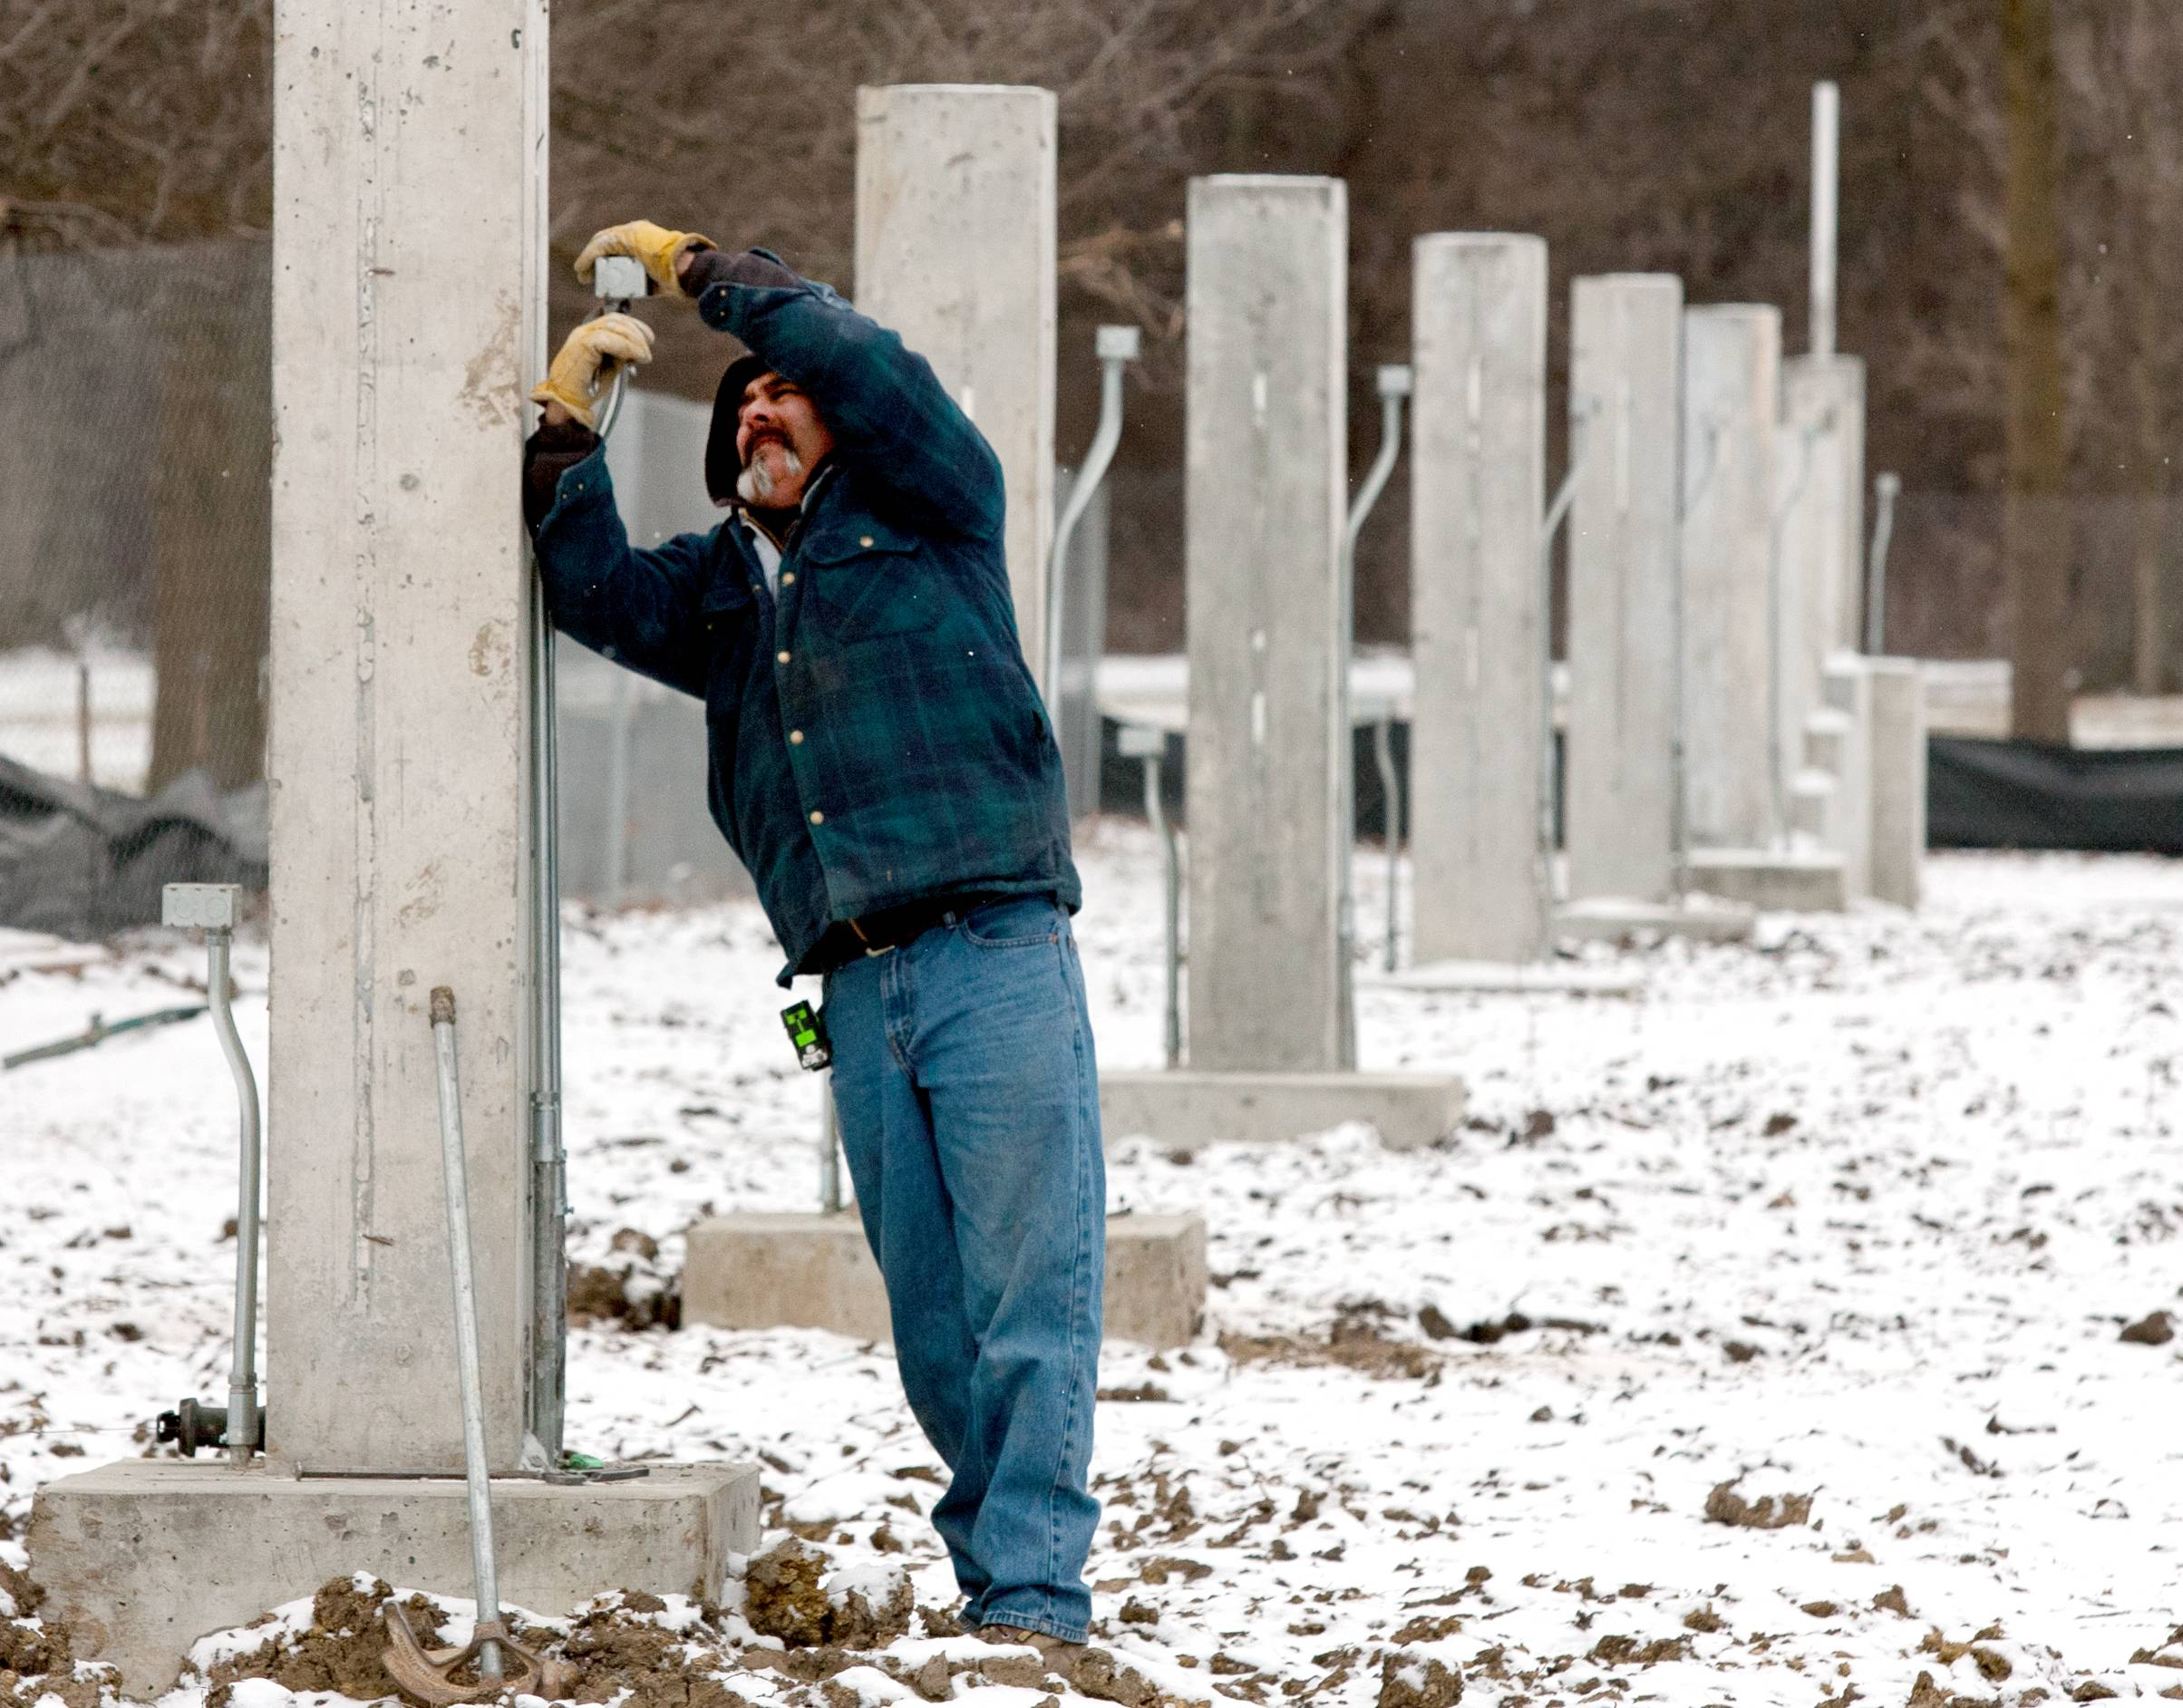 Construction on the Cantigy Park entrance continues, in preparation for its opening Memorial Day weekend. Jeff Zbreski, of Anchor Electric in Carol Stream, installs electrical boxes on each of the pillars.